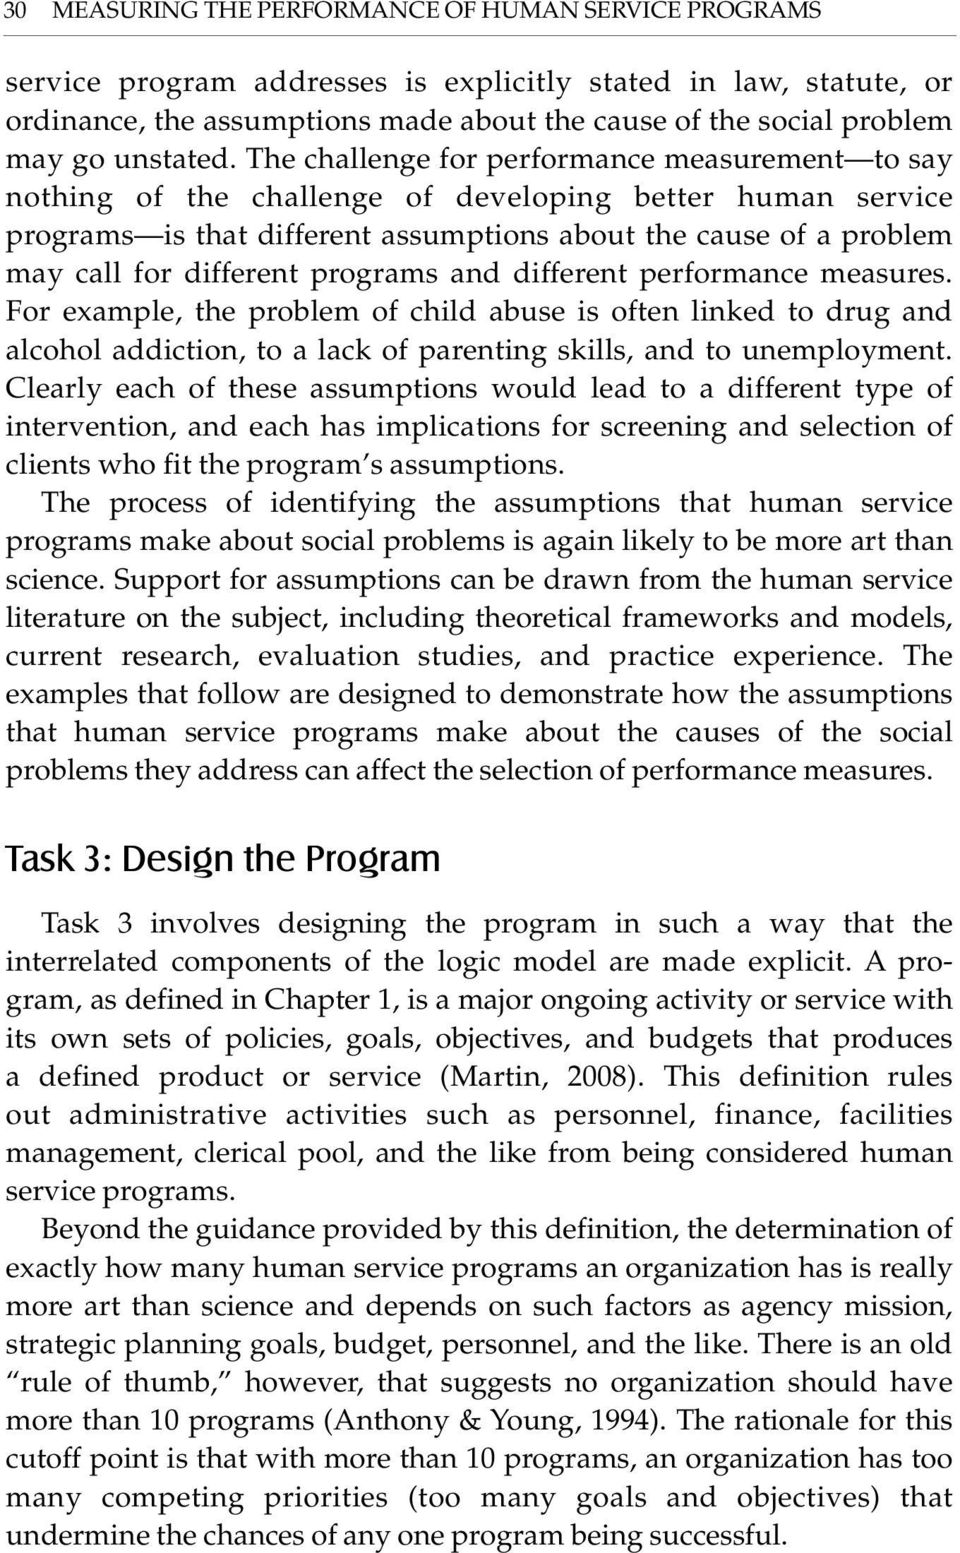 The challenge for ment to say nothing of the challenge of developing better human service programs is that different assumptions about the cause of a problem may call for different programs and